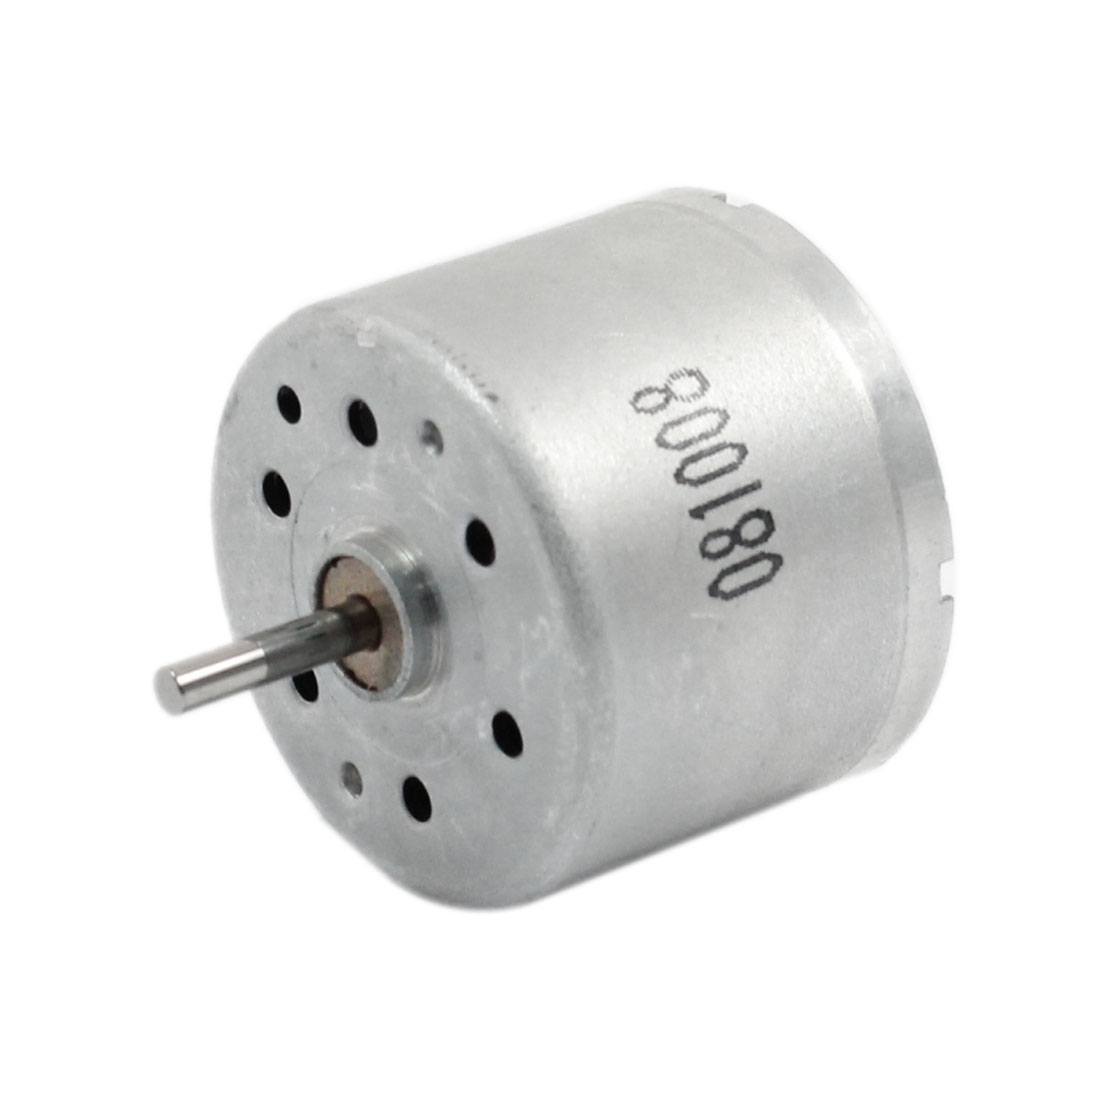 2mm Shaft 24mm Diameter Electric 2 Terminal Cylinderl Permanent Mini Motor 4200RPM DC 3.0-9.0V